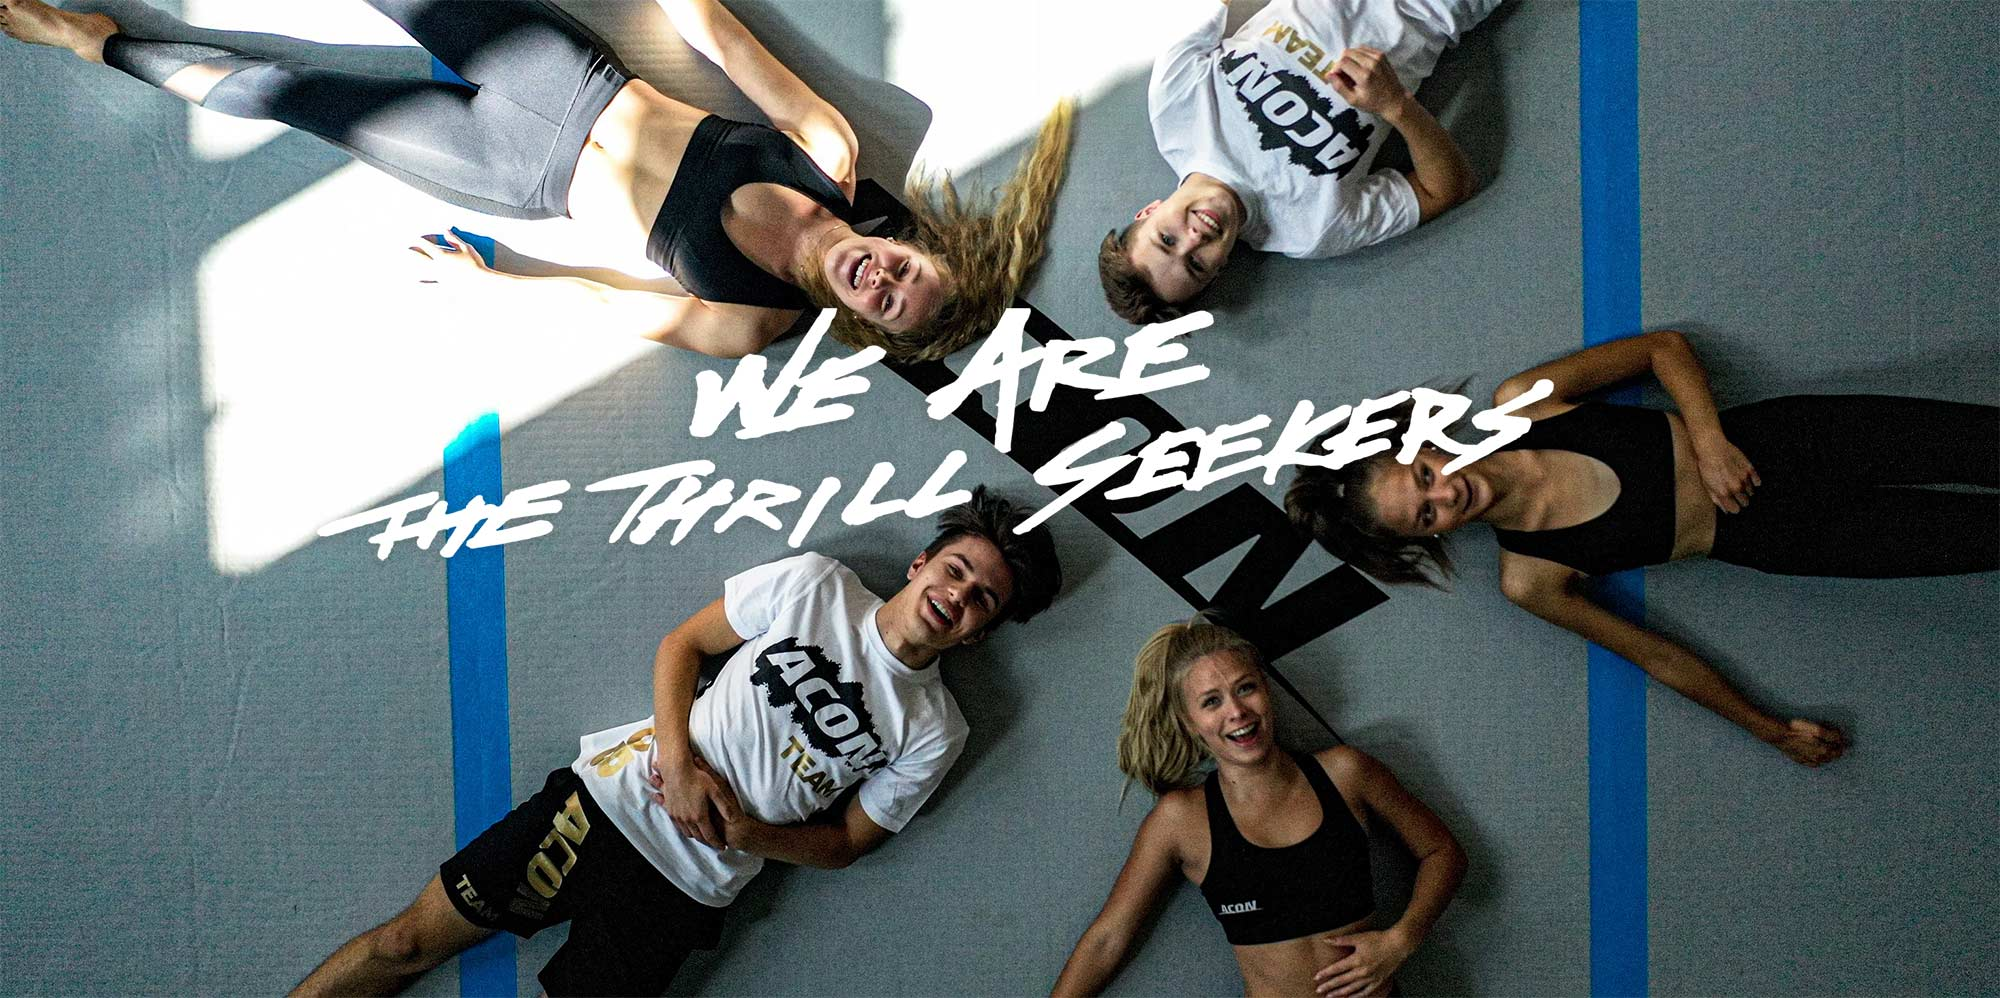 ACON - we are the thrill seekers